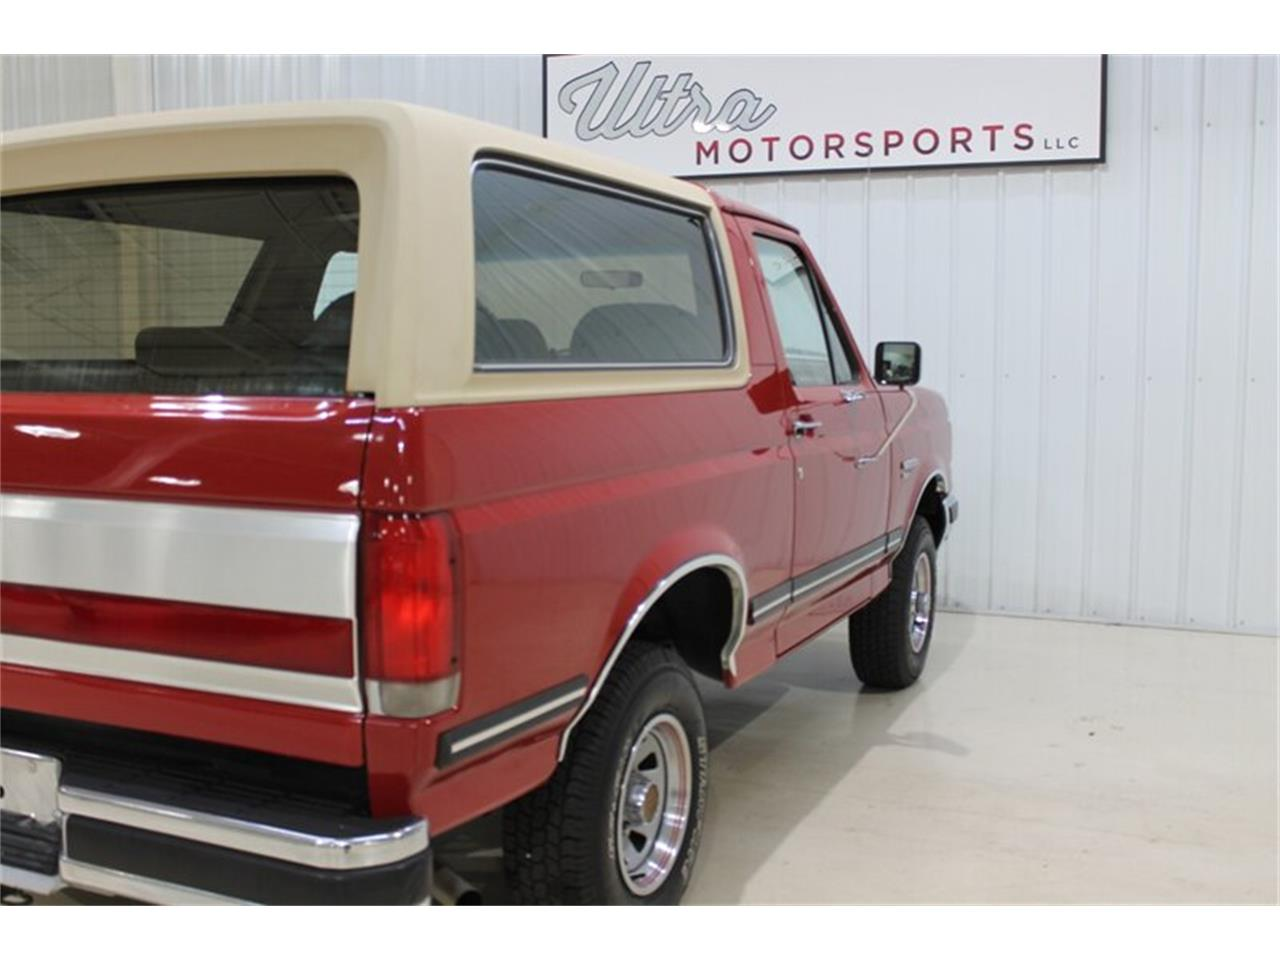 1989 Ford Bronco (CC-1237775) for sale in Fort Wayne, Indiana